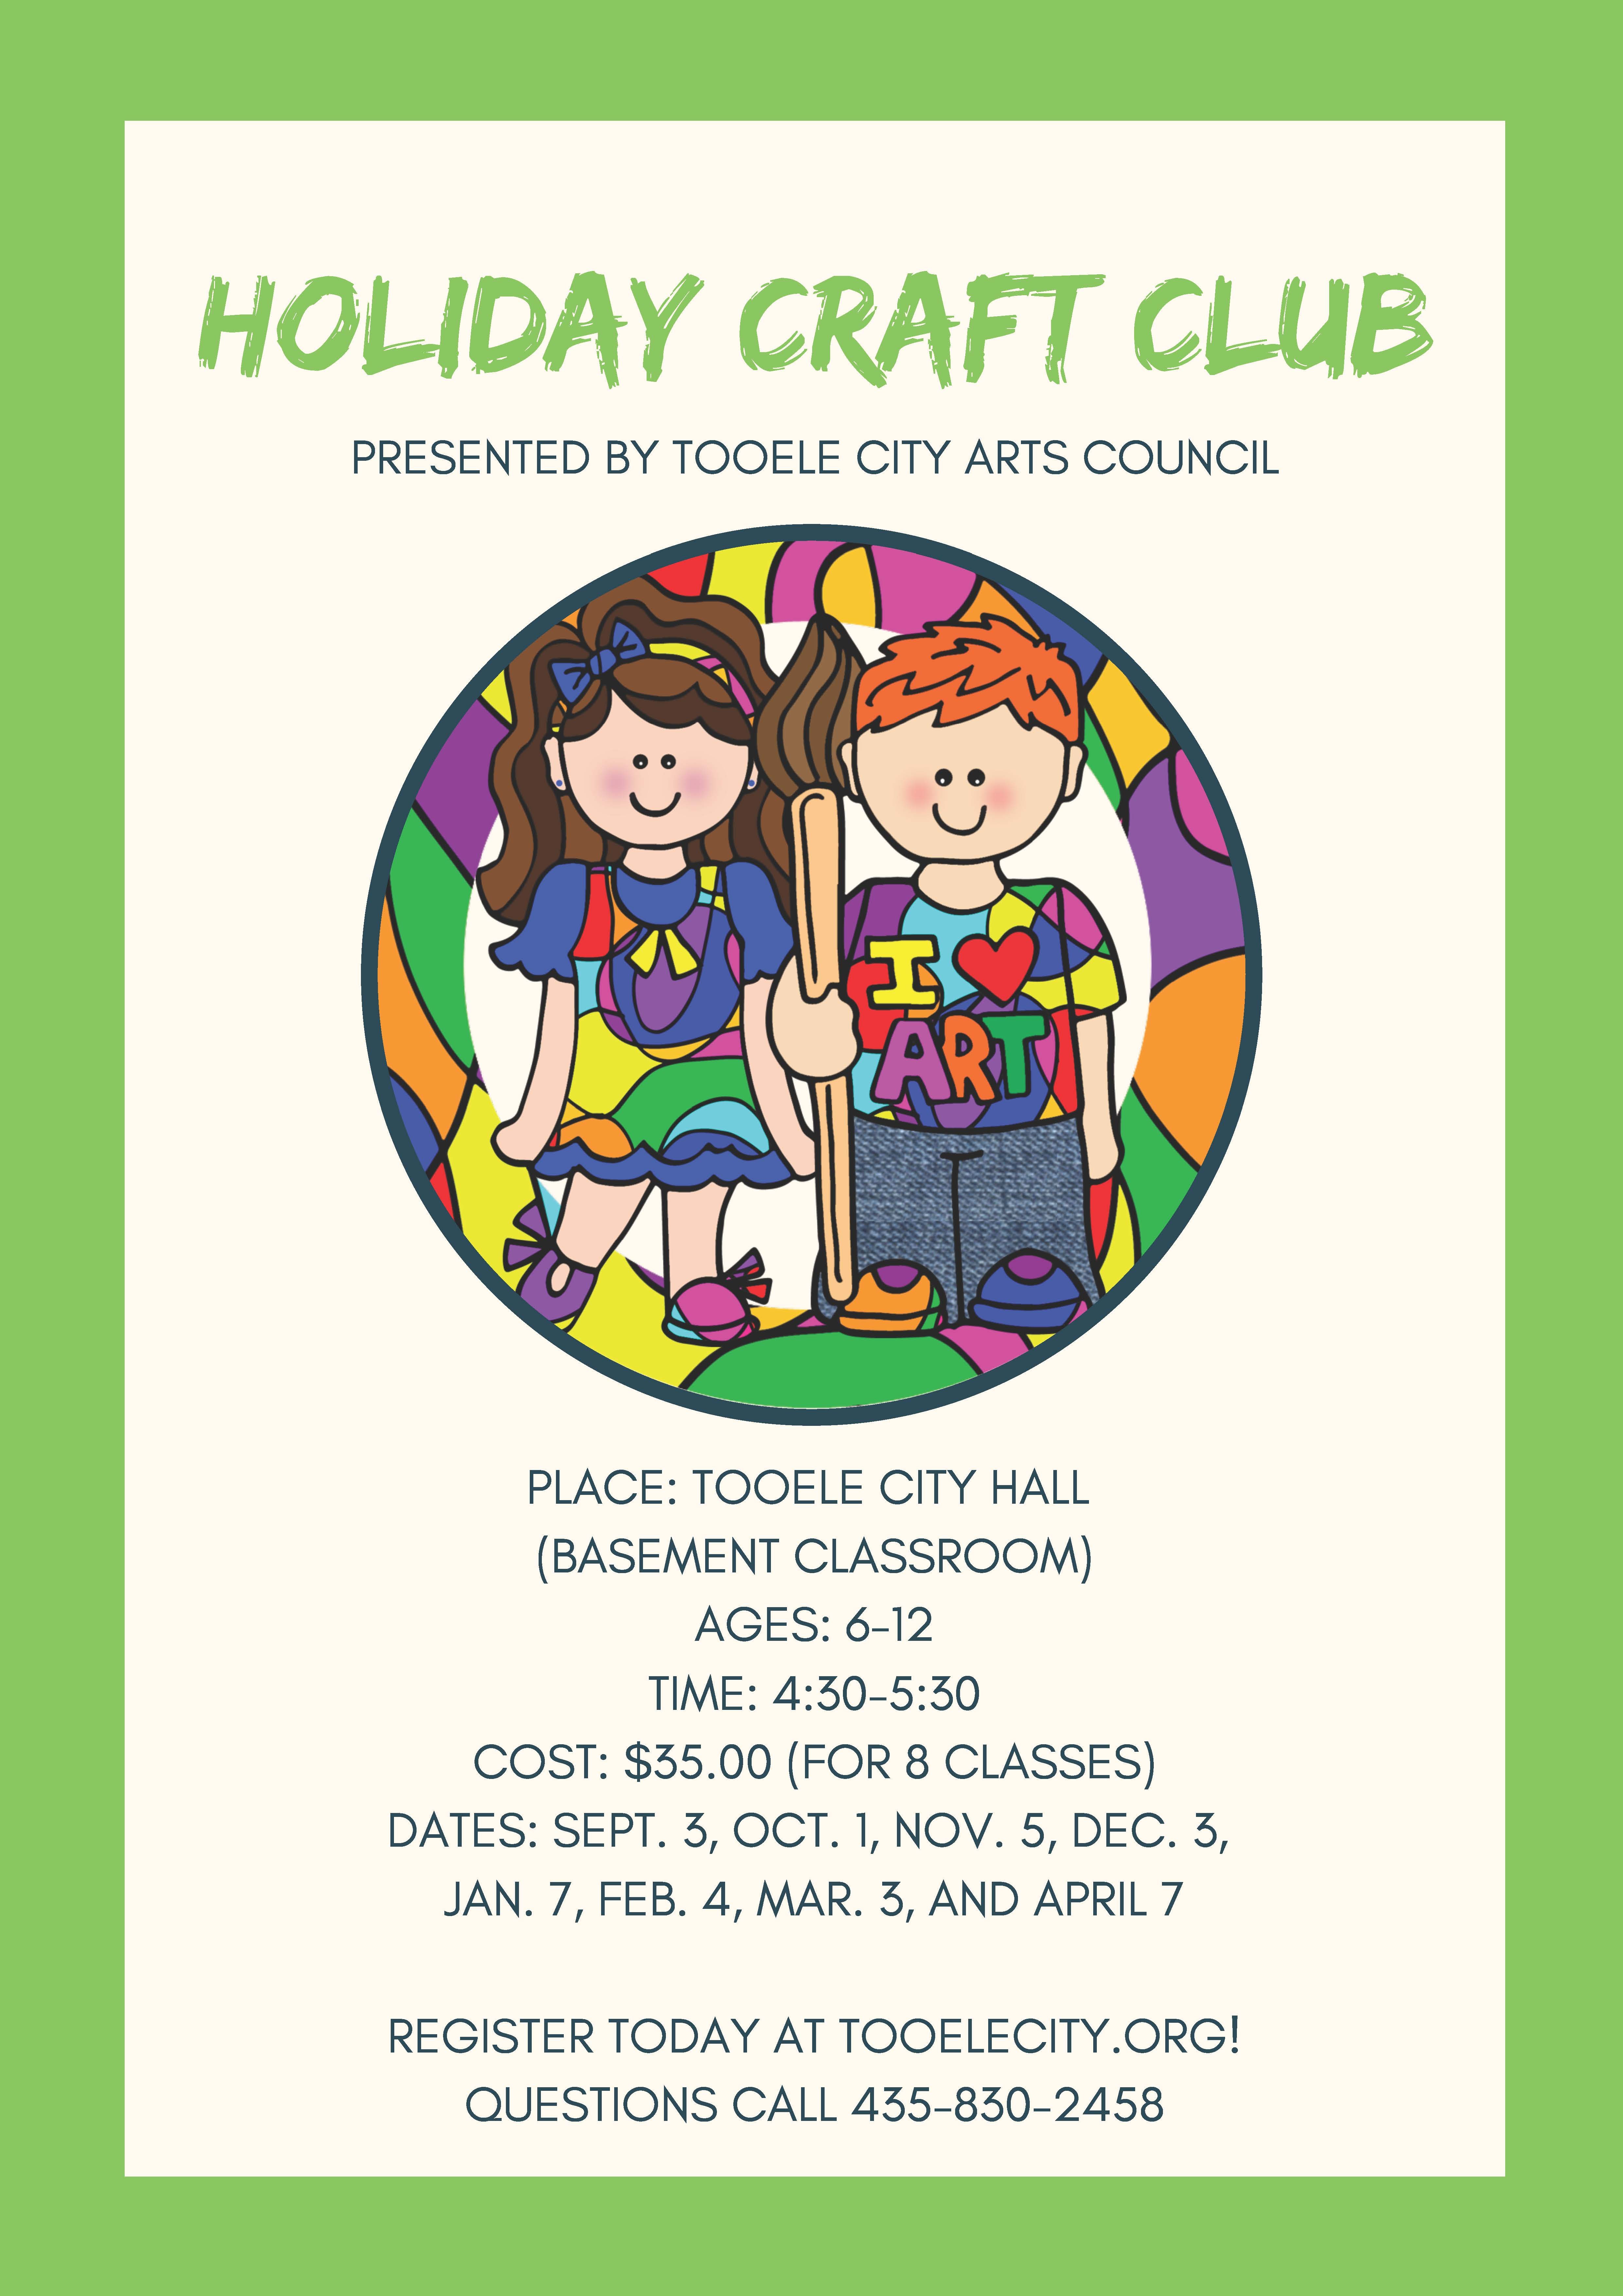 Kids Holiday Craft Club 2019 - 2020 @ Tooele City Hall | Tooele | Utah | United States